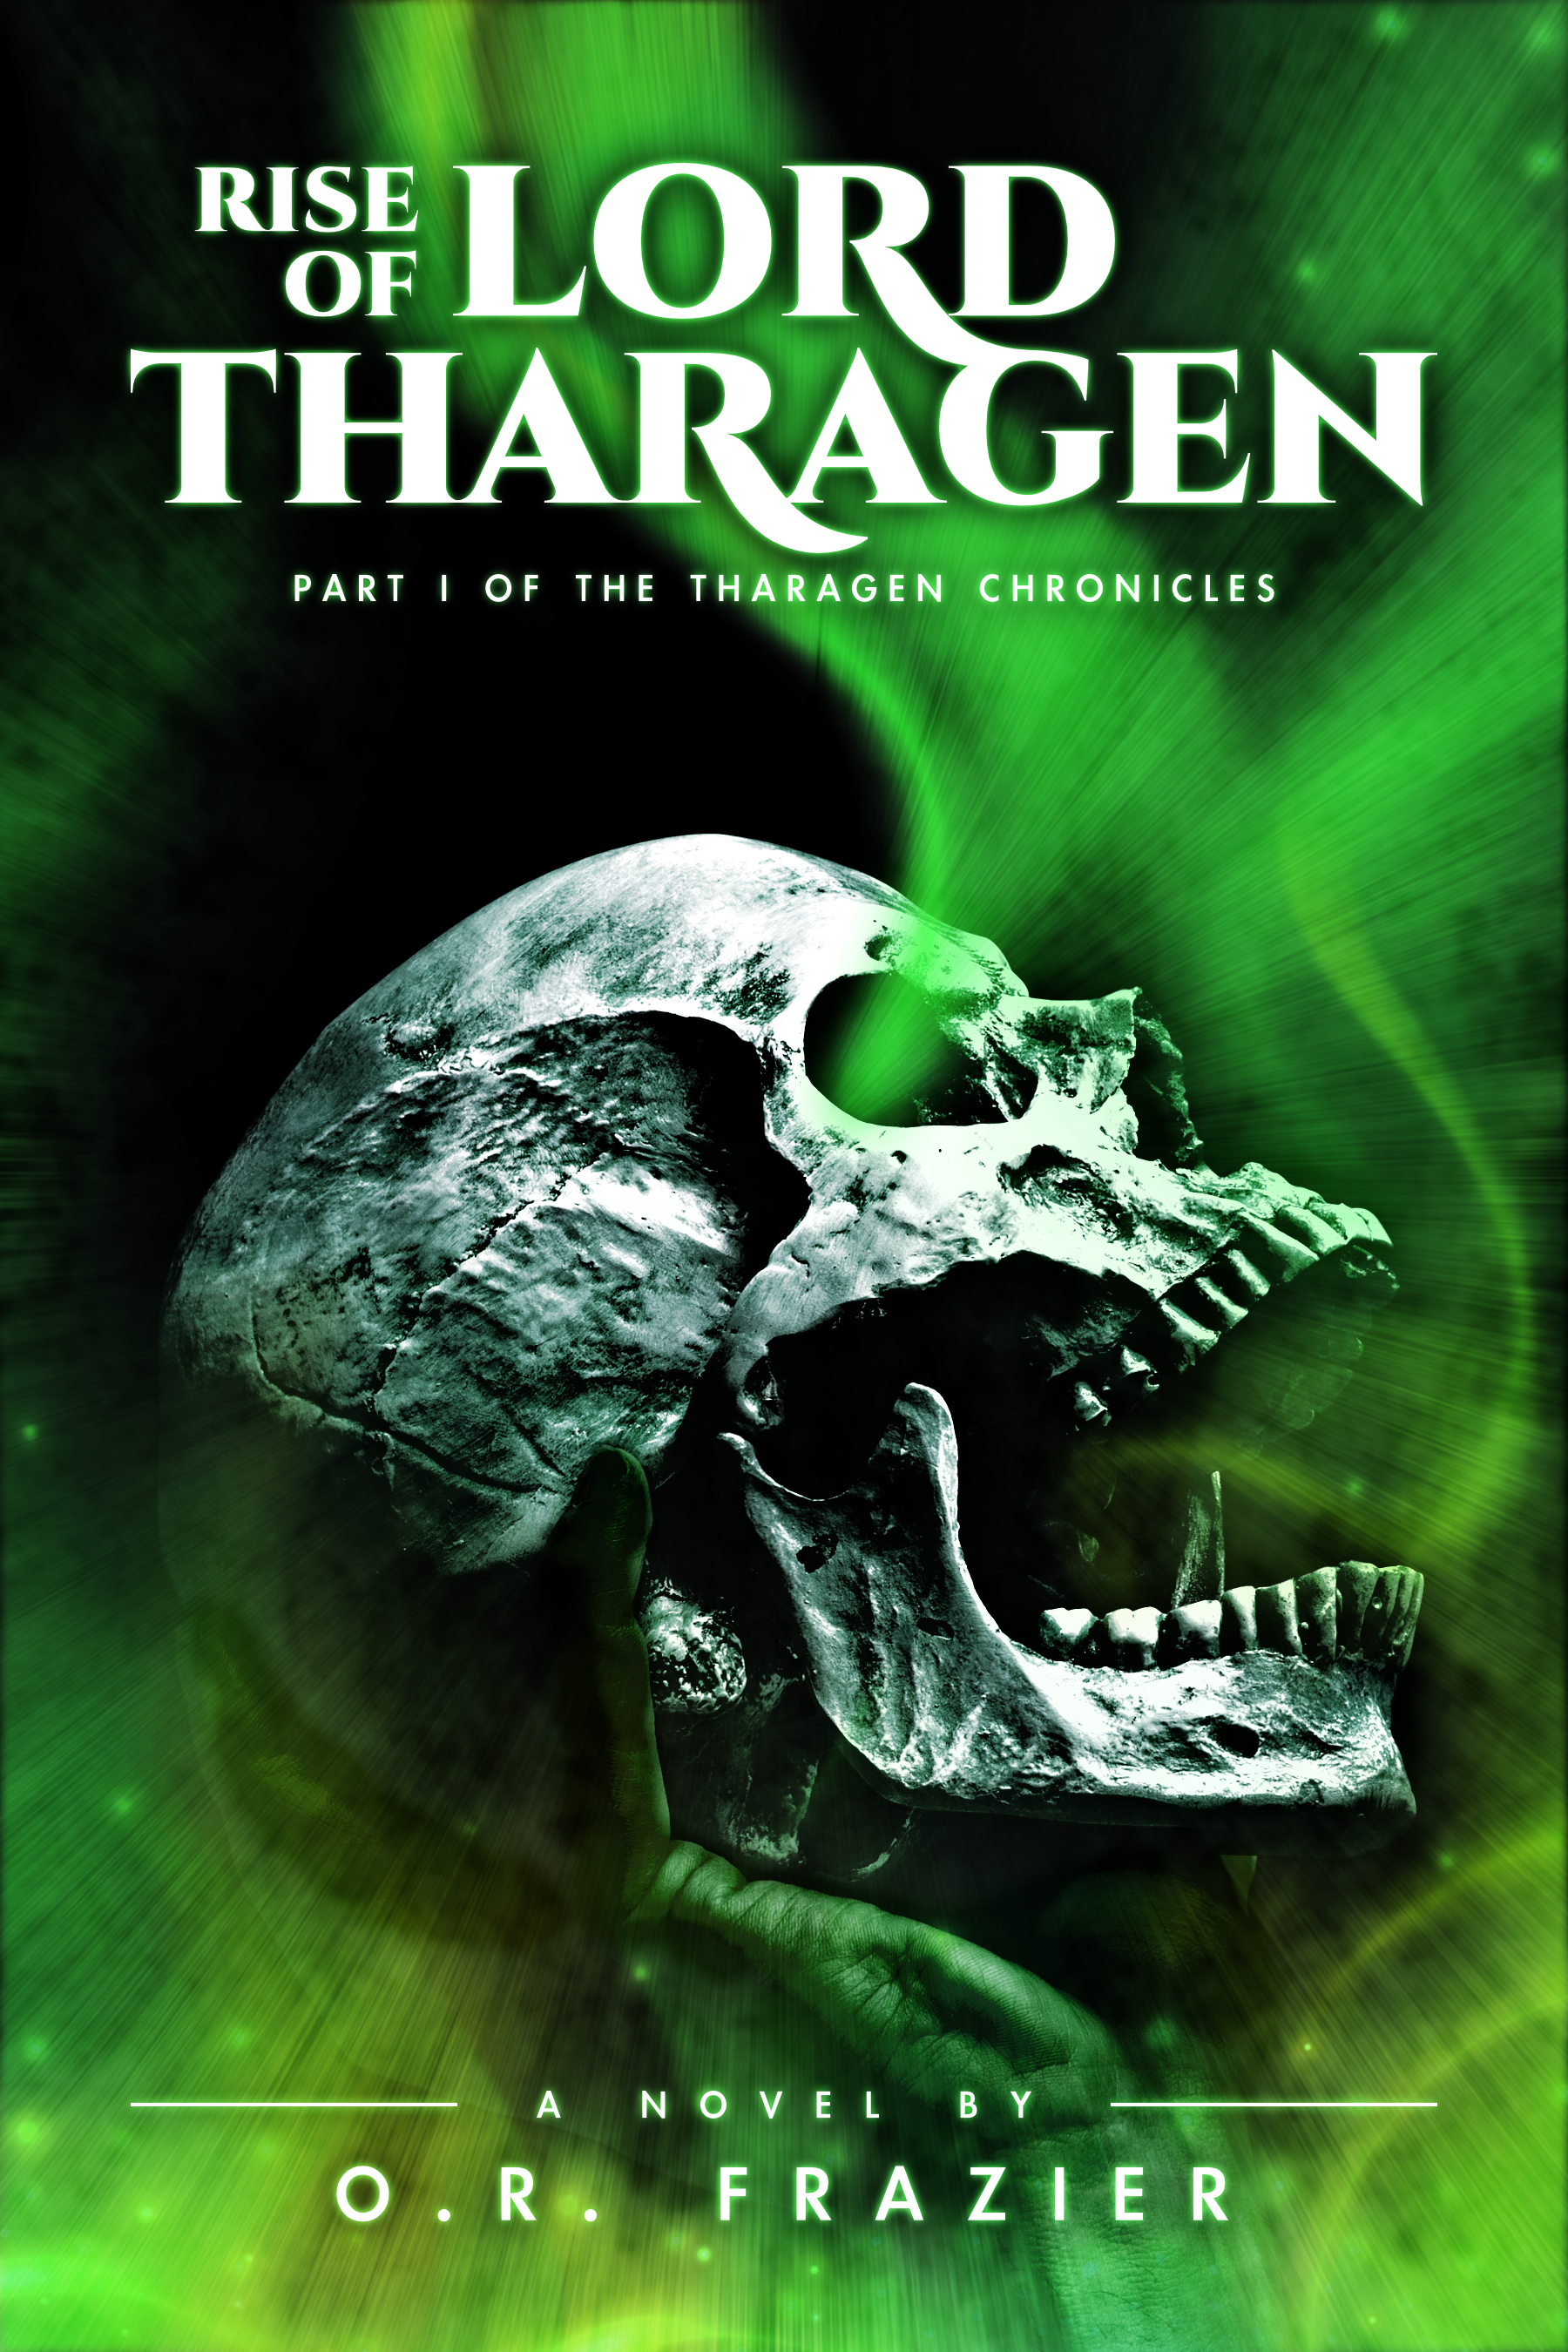 Rise of Lord Tharagen by O.R. Frazier